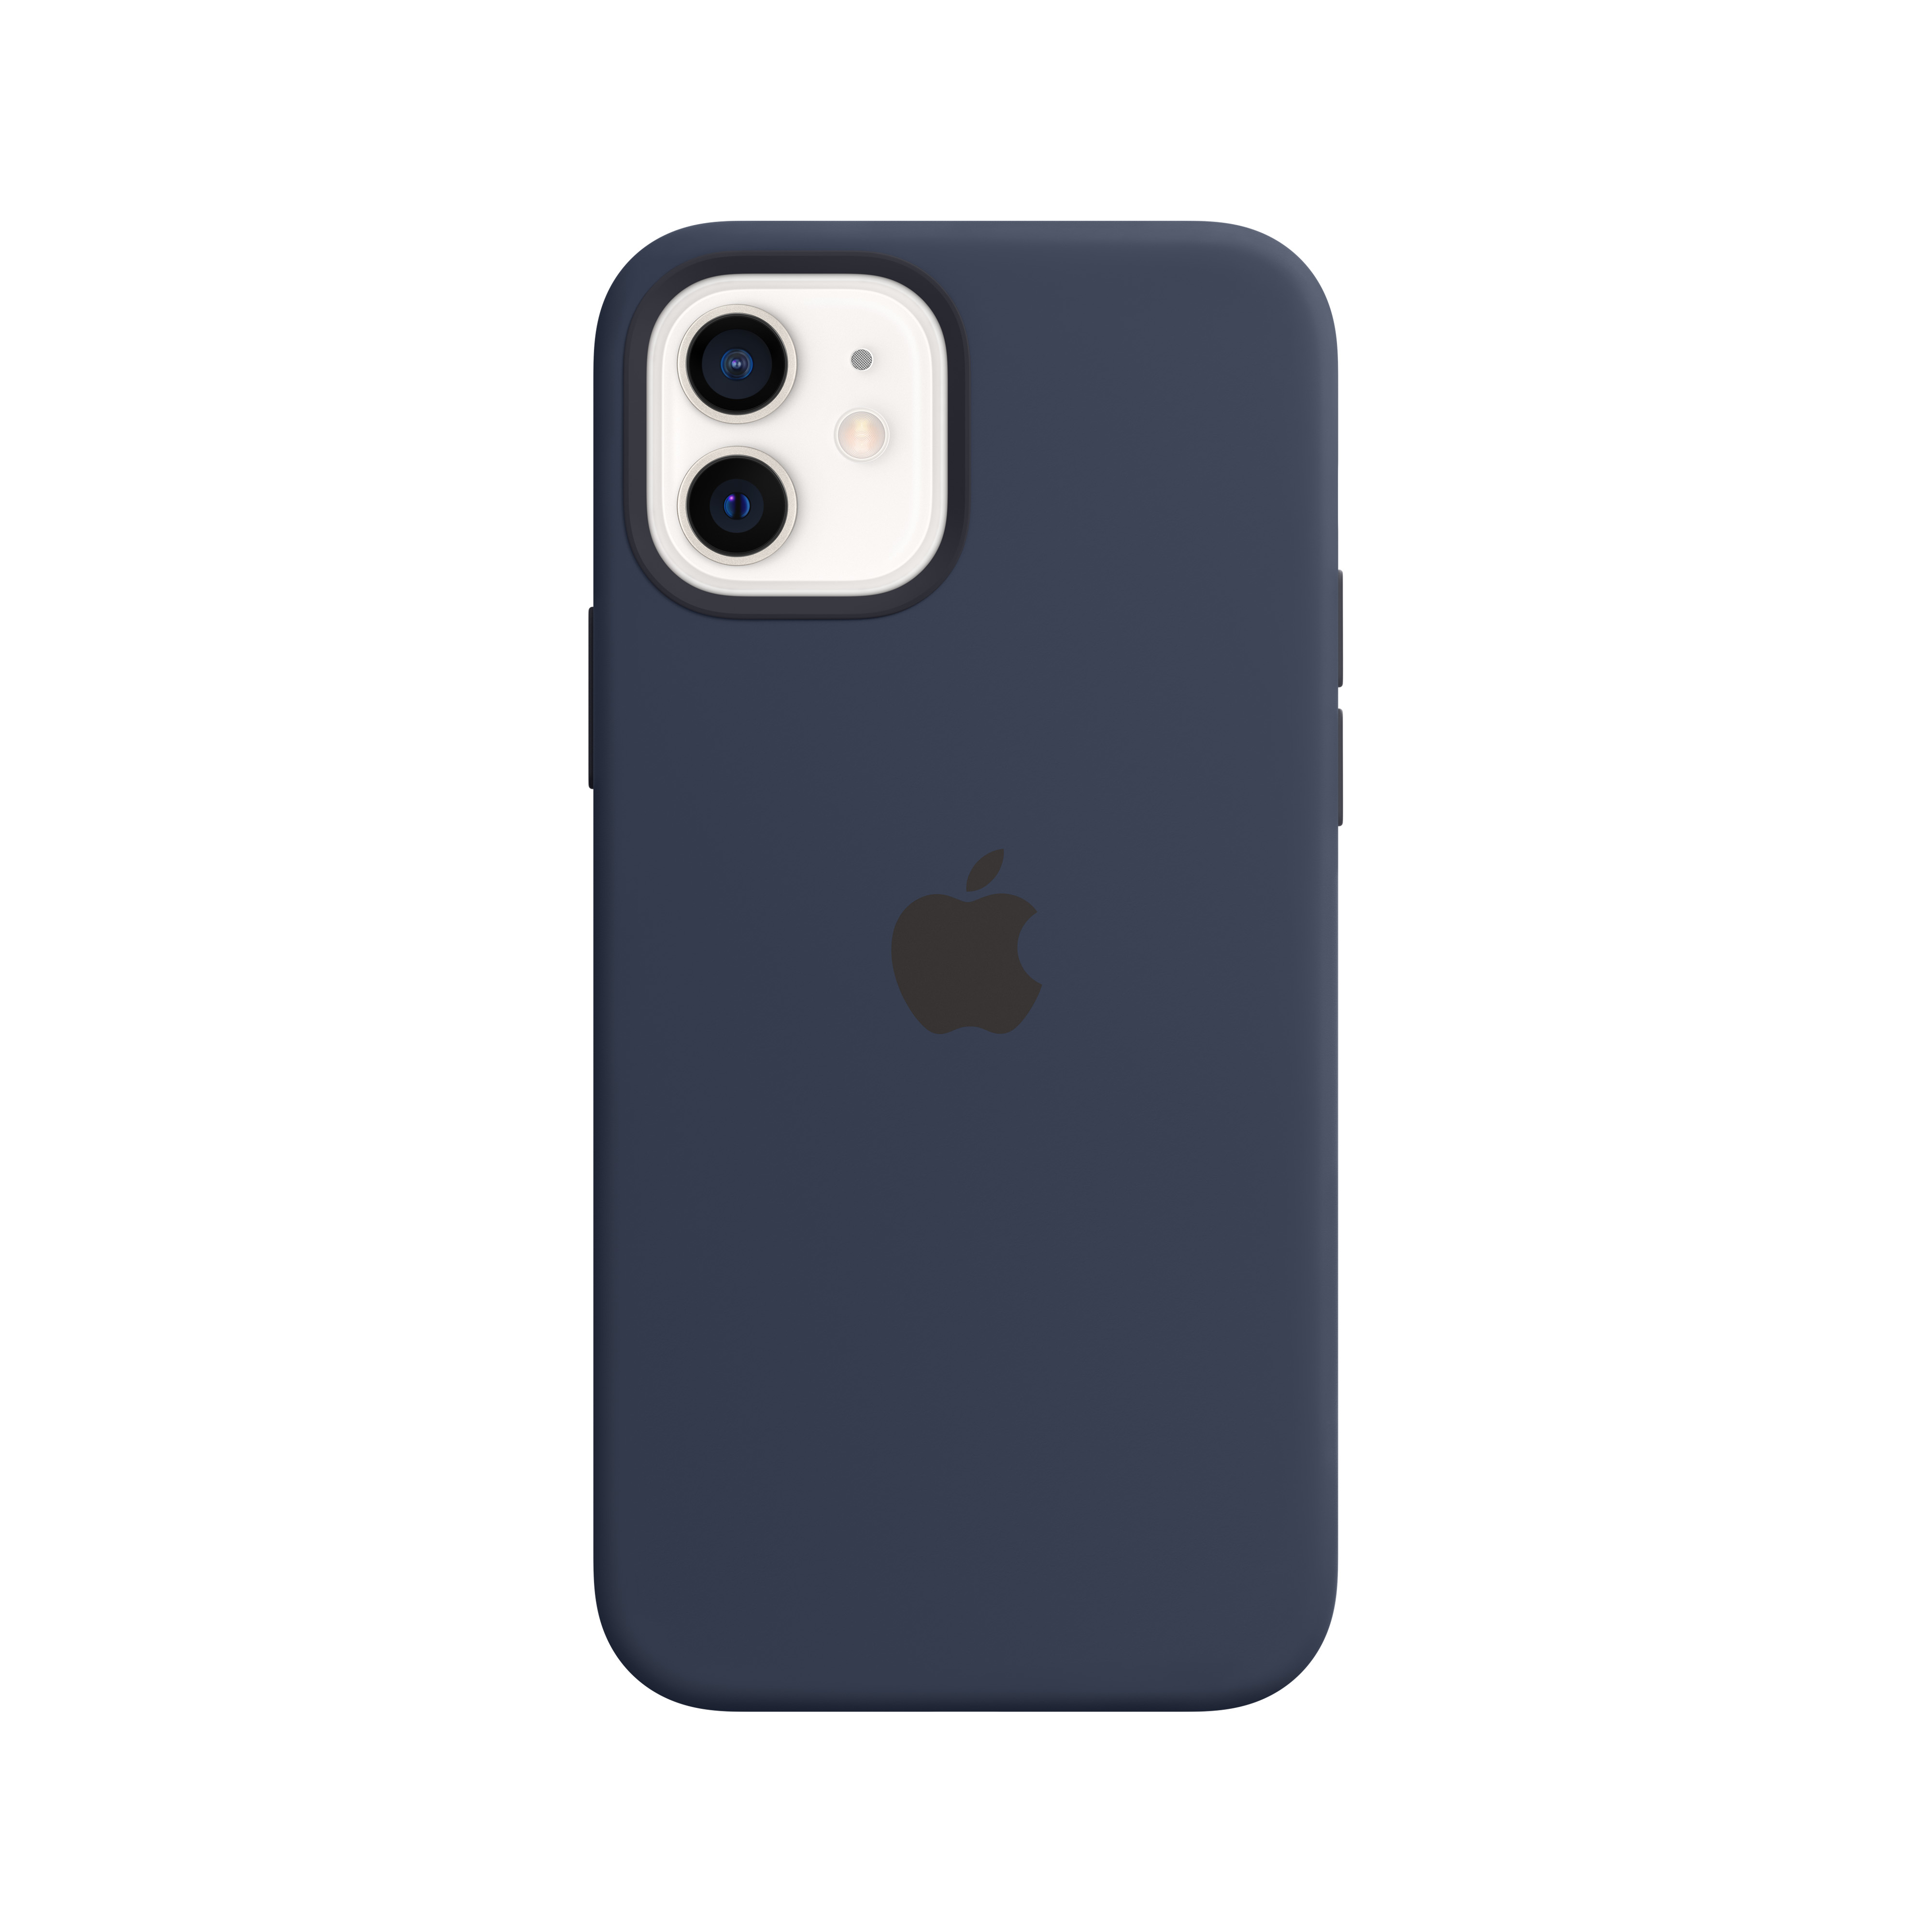 Apple - iPhone 12 | 12 Pro Silicone Case with MagSafe - Deep Navy Mhl43zm/a